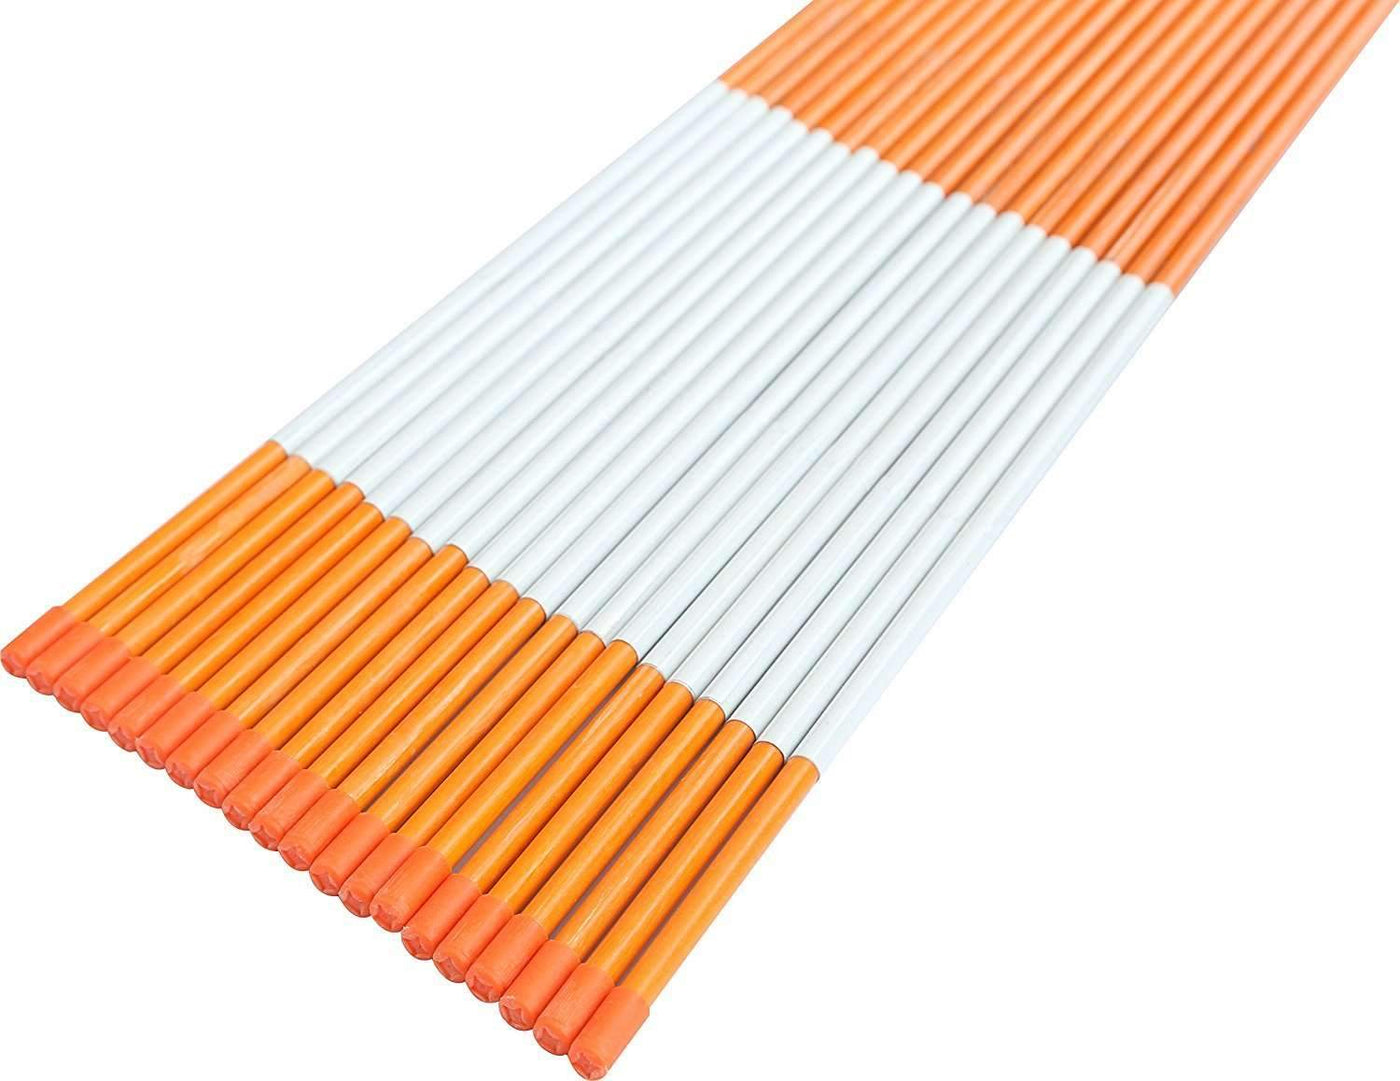 FiberMarker Reflective Driveway Makers 36-Inch Orange 25-Pack Hollow 5//16-Inch Dia Reflective Snow Stakes for Roadway